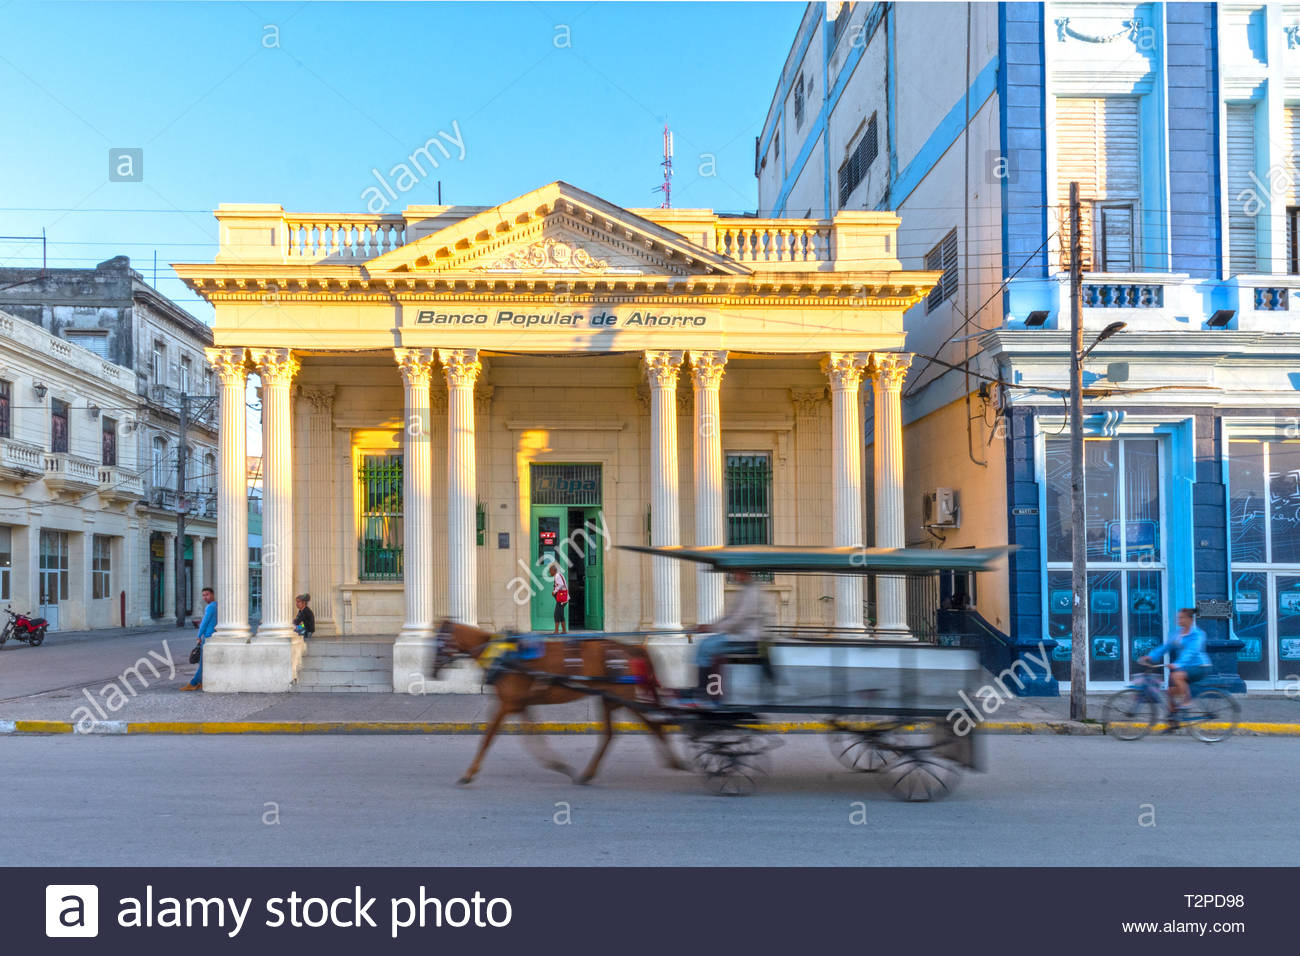 Old bank building occupied by the 'Banco Popular de Ahorro'. The area is a National Monument and a tourist attraction. Cuban lifestyle in the morning. - Stock Image